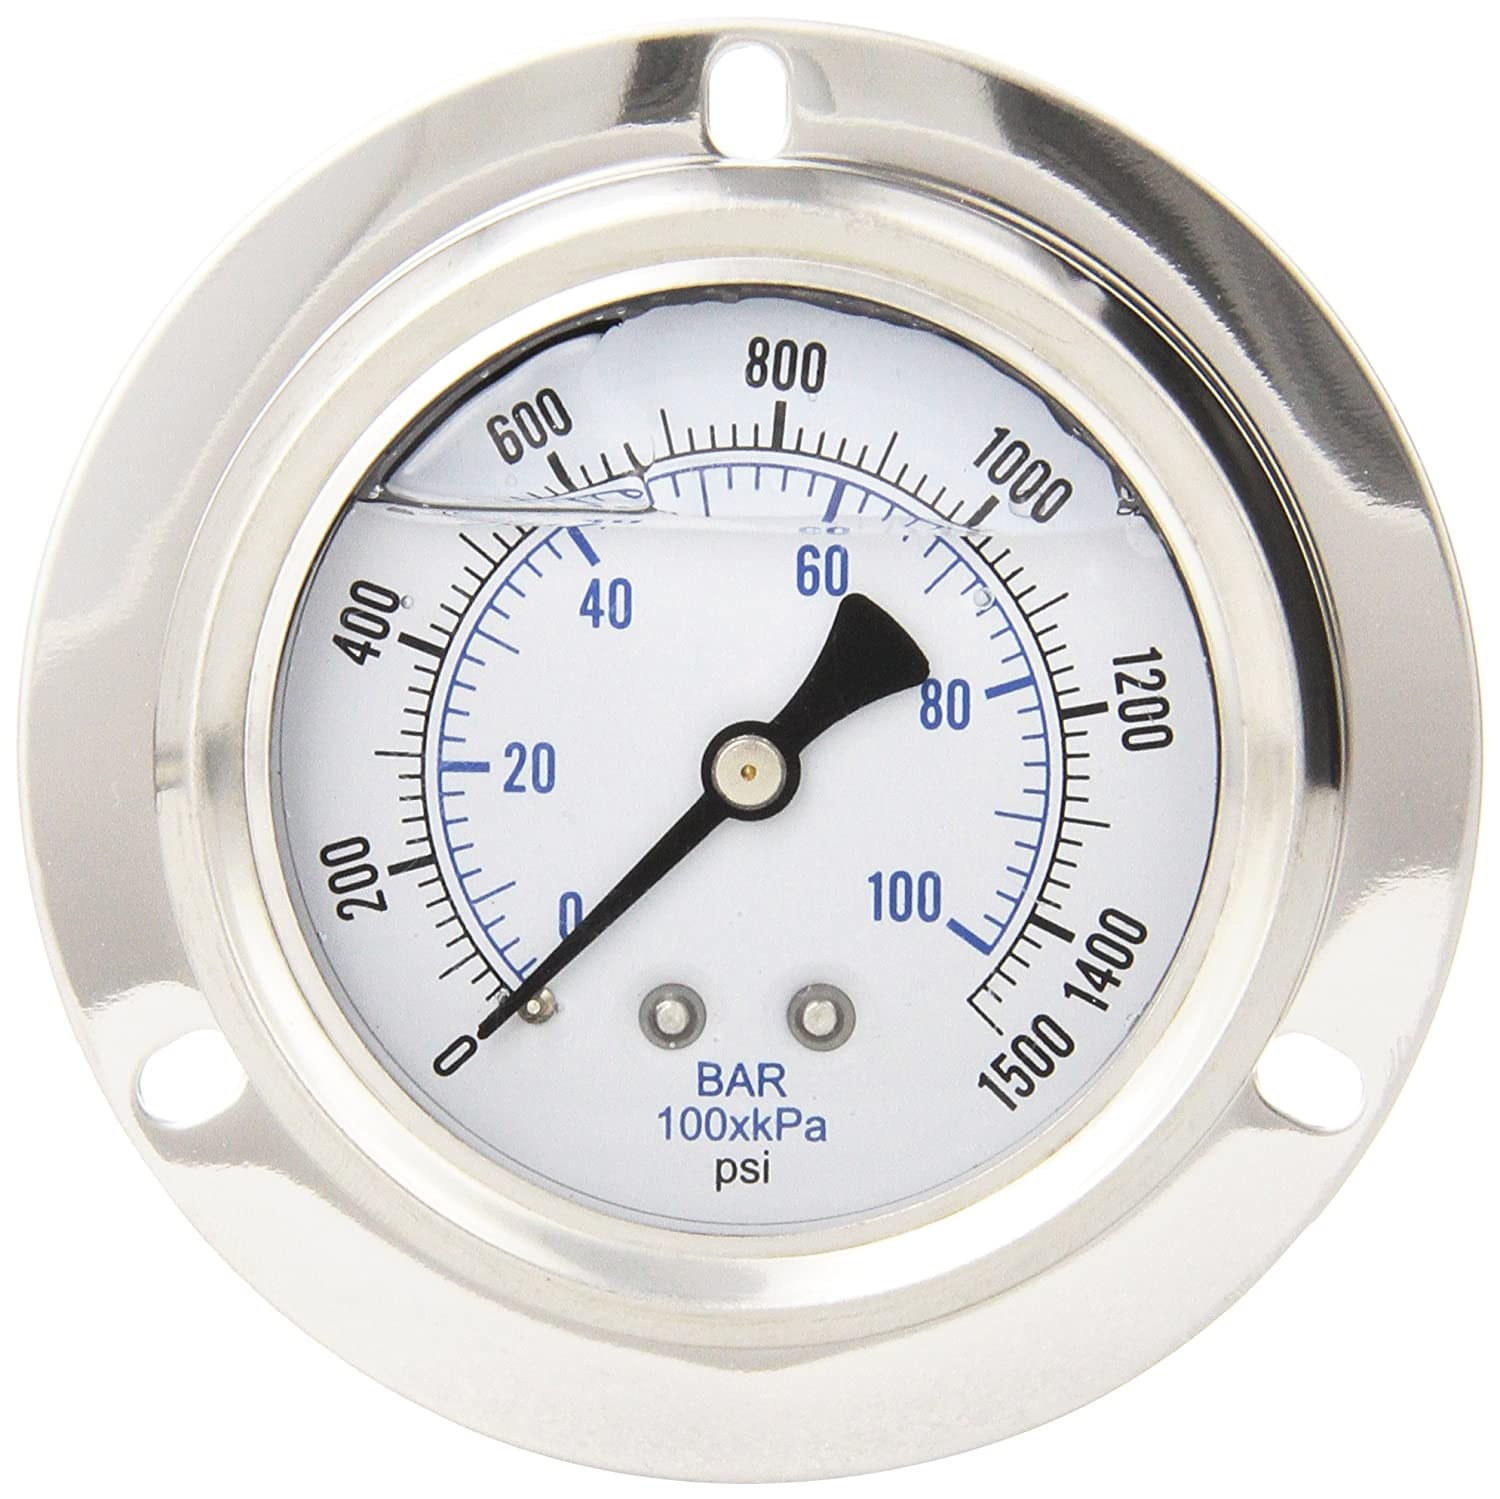 PIC Gauge PRO 204L 254N Glycerin Filled Industrial Front Flanged Panel Mount Pressure Gauge with Stainless Steel Case Brass Internals Plastic Lens 2 1 2 Dial Size 1 4 Male NPT 0 1500 psi